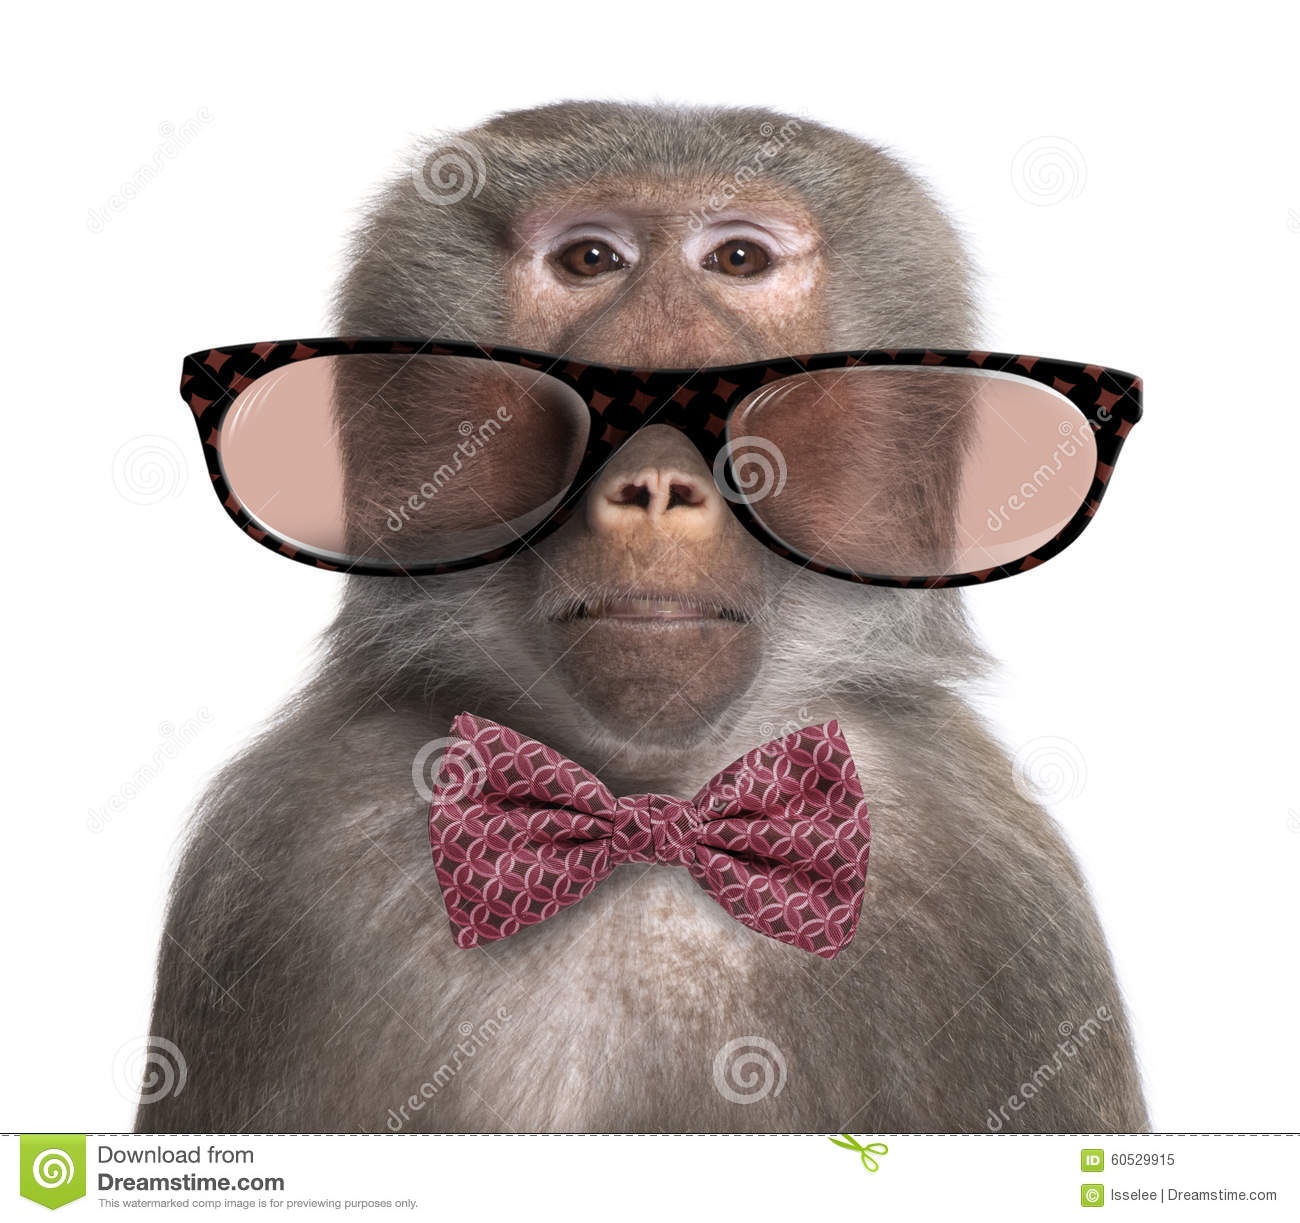 Baboon wearing glasses and a bow tie in front of a white background.